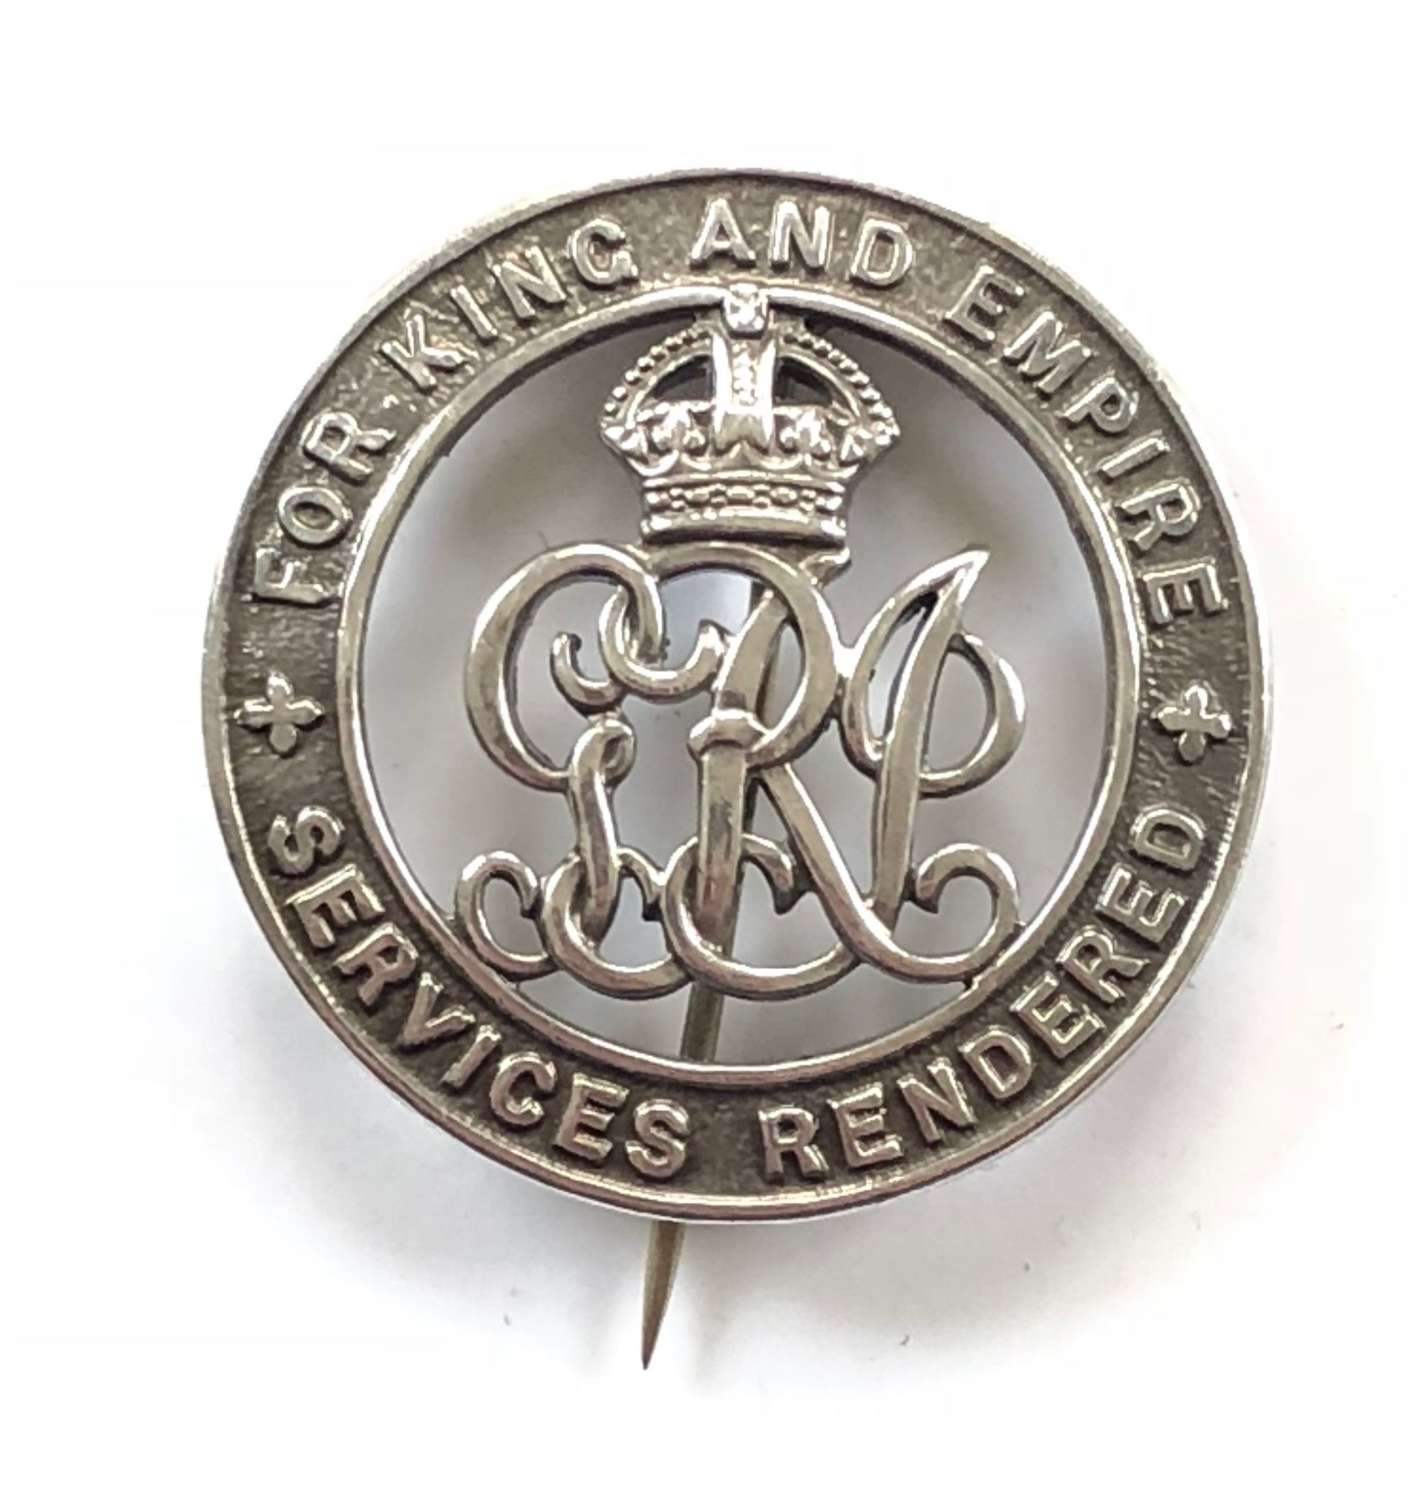 WW1 Royal Irish Rifles Silver War Badge.